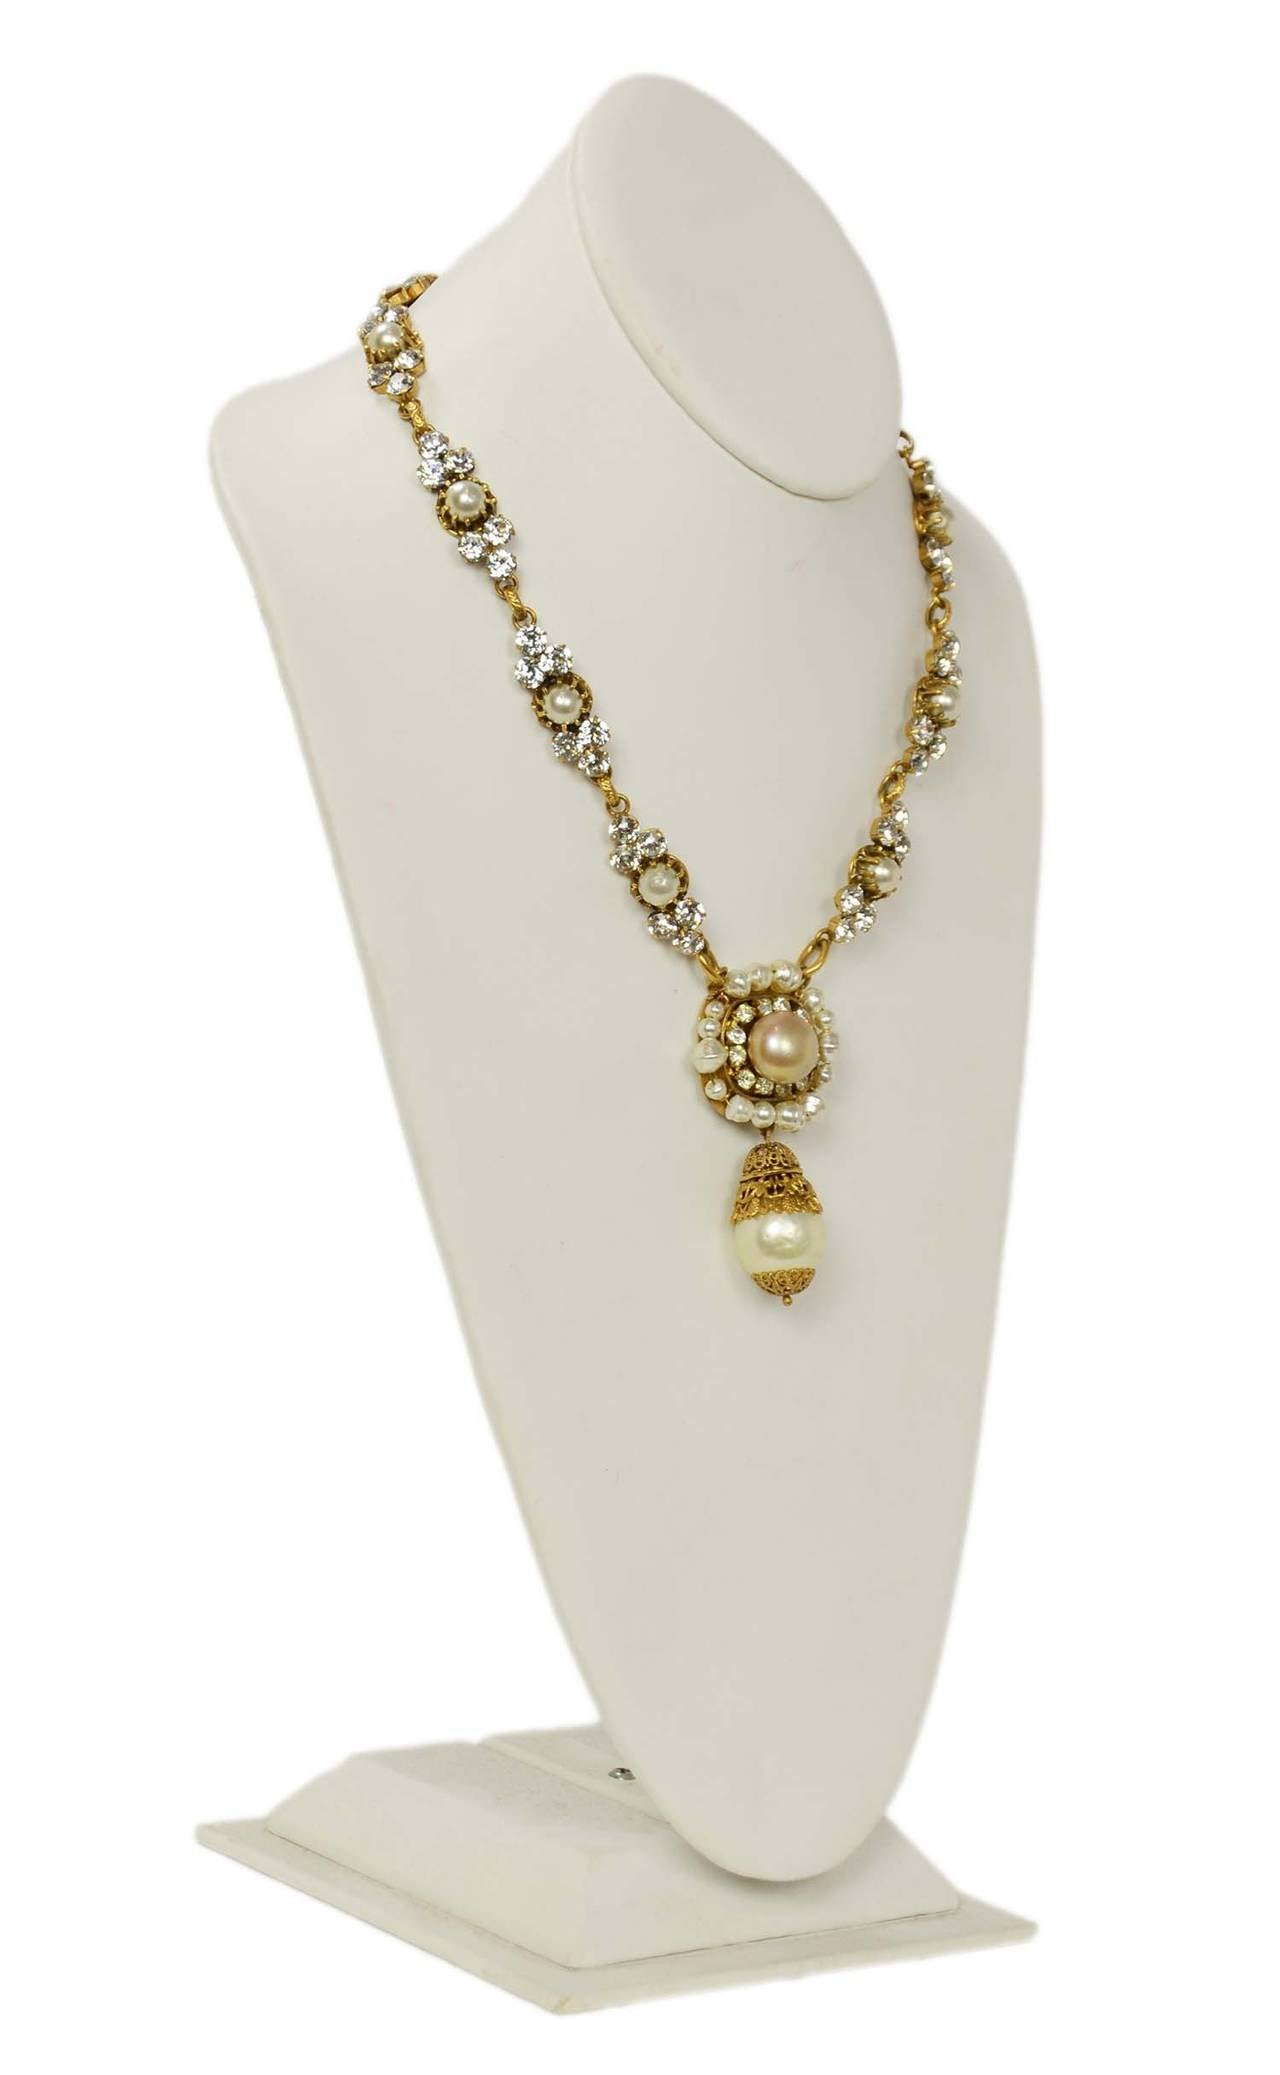 CHANEL Vintage Pearl and Strass Crystal Necklace w/Large Pearl & Drop Pendant 3